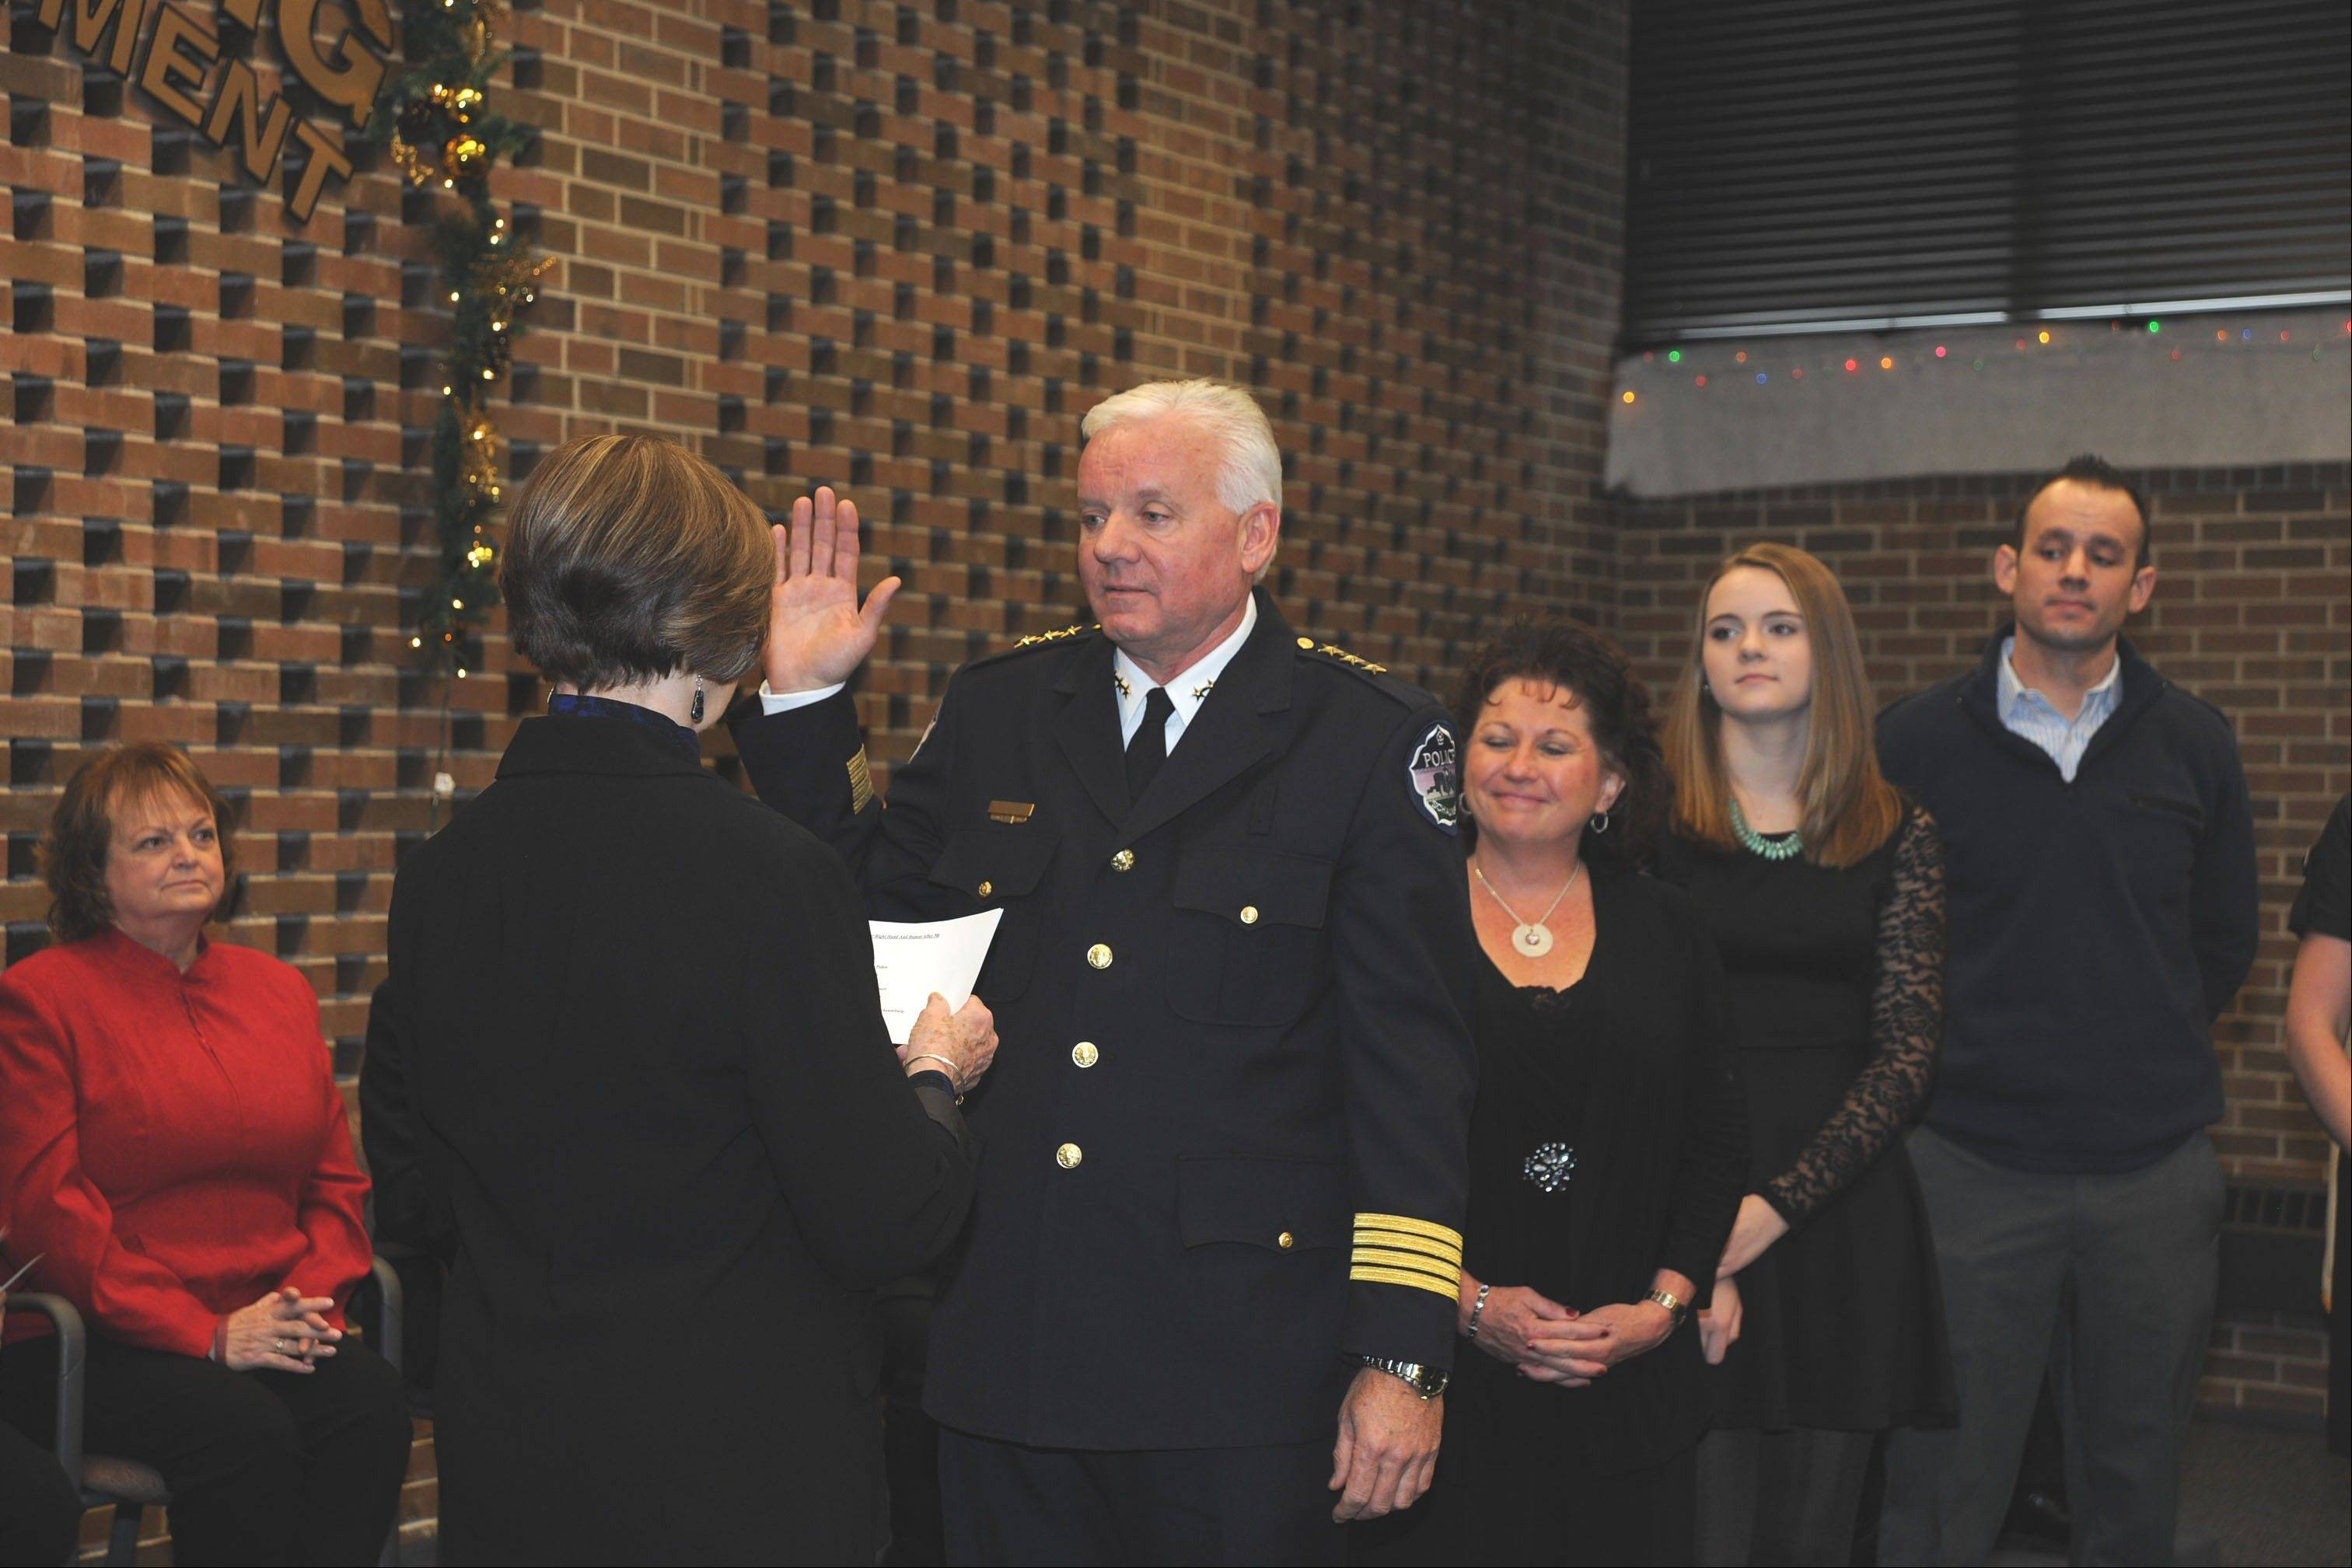 New Schaumburg Police Chief James Lamkin was sworn into office this week by Village Clerk Marilyn Karr as his family looked on. Lamkin, who comes to Schaumburg after a decade as St. Charles' police chief, officially assumes his duties Dec. 30.